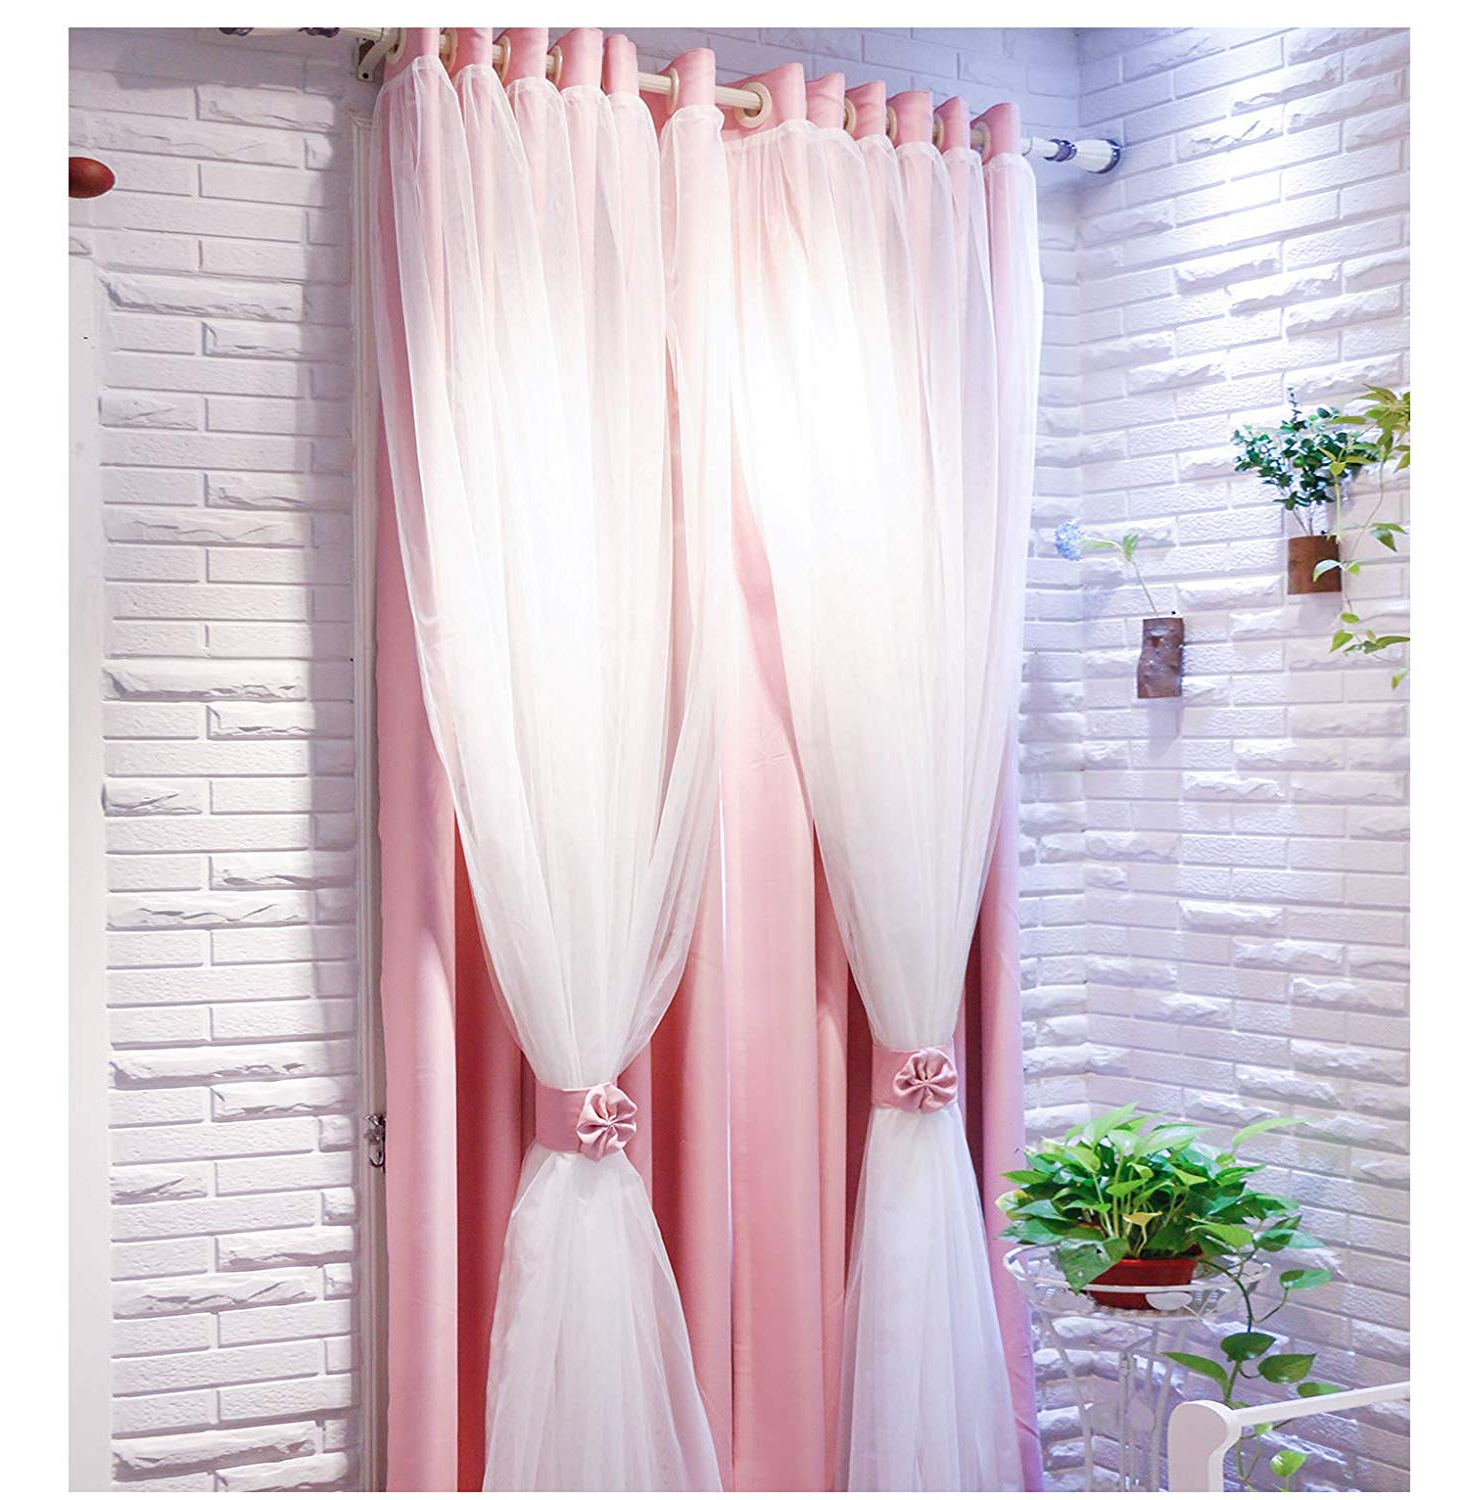 Vandesun Dual Layer Grommet Top Mix And Match Blackout Curtains With White Sheer For Living Room And Bedroom – 2 Panels (52x63, Pink) For Current Elrene Aurora Kids Room Darkening Layered Sheer Curtains (View 15 of 20)